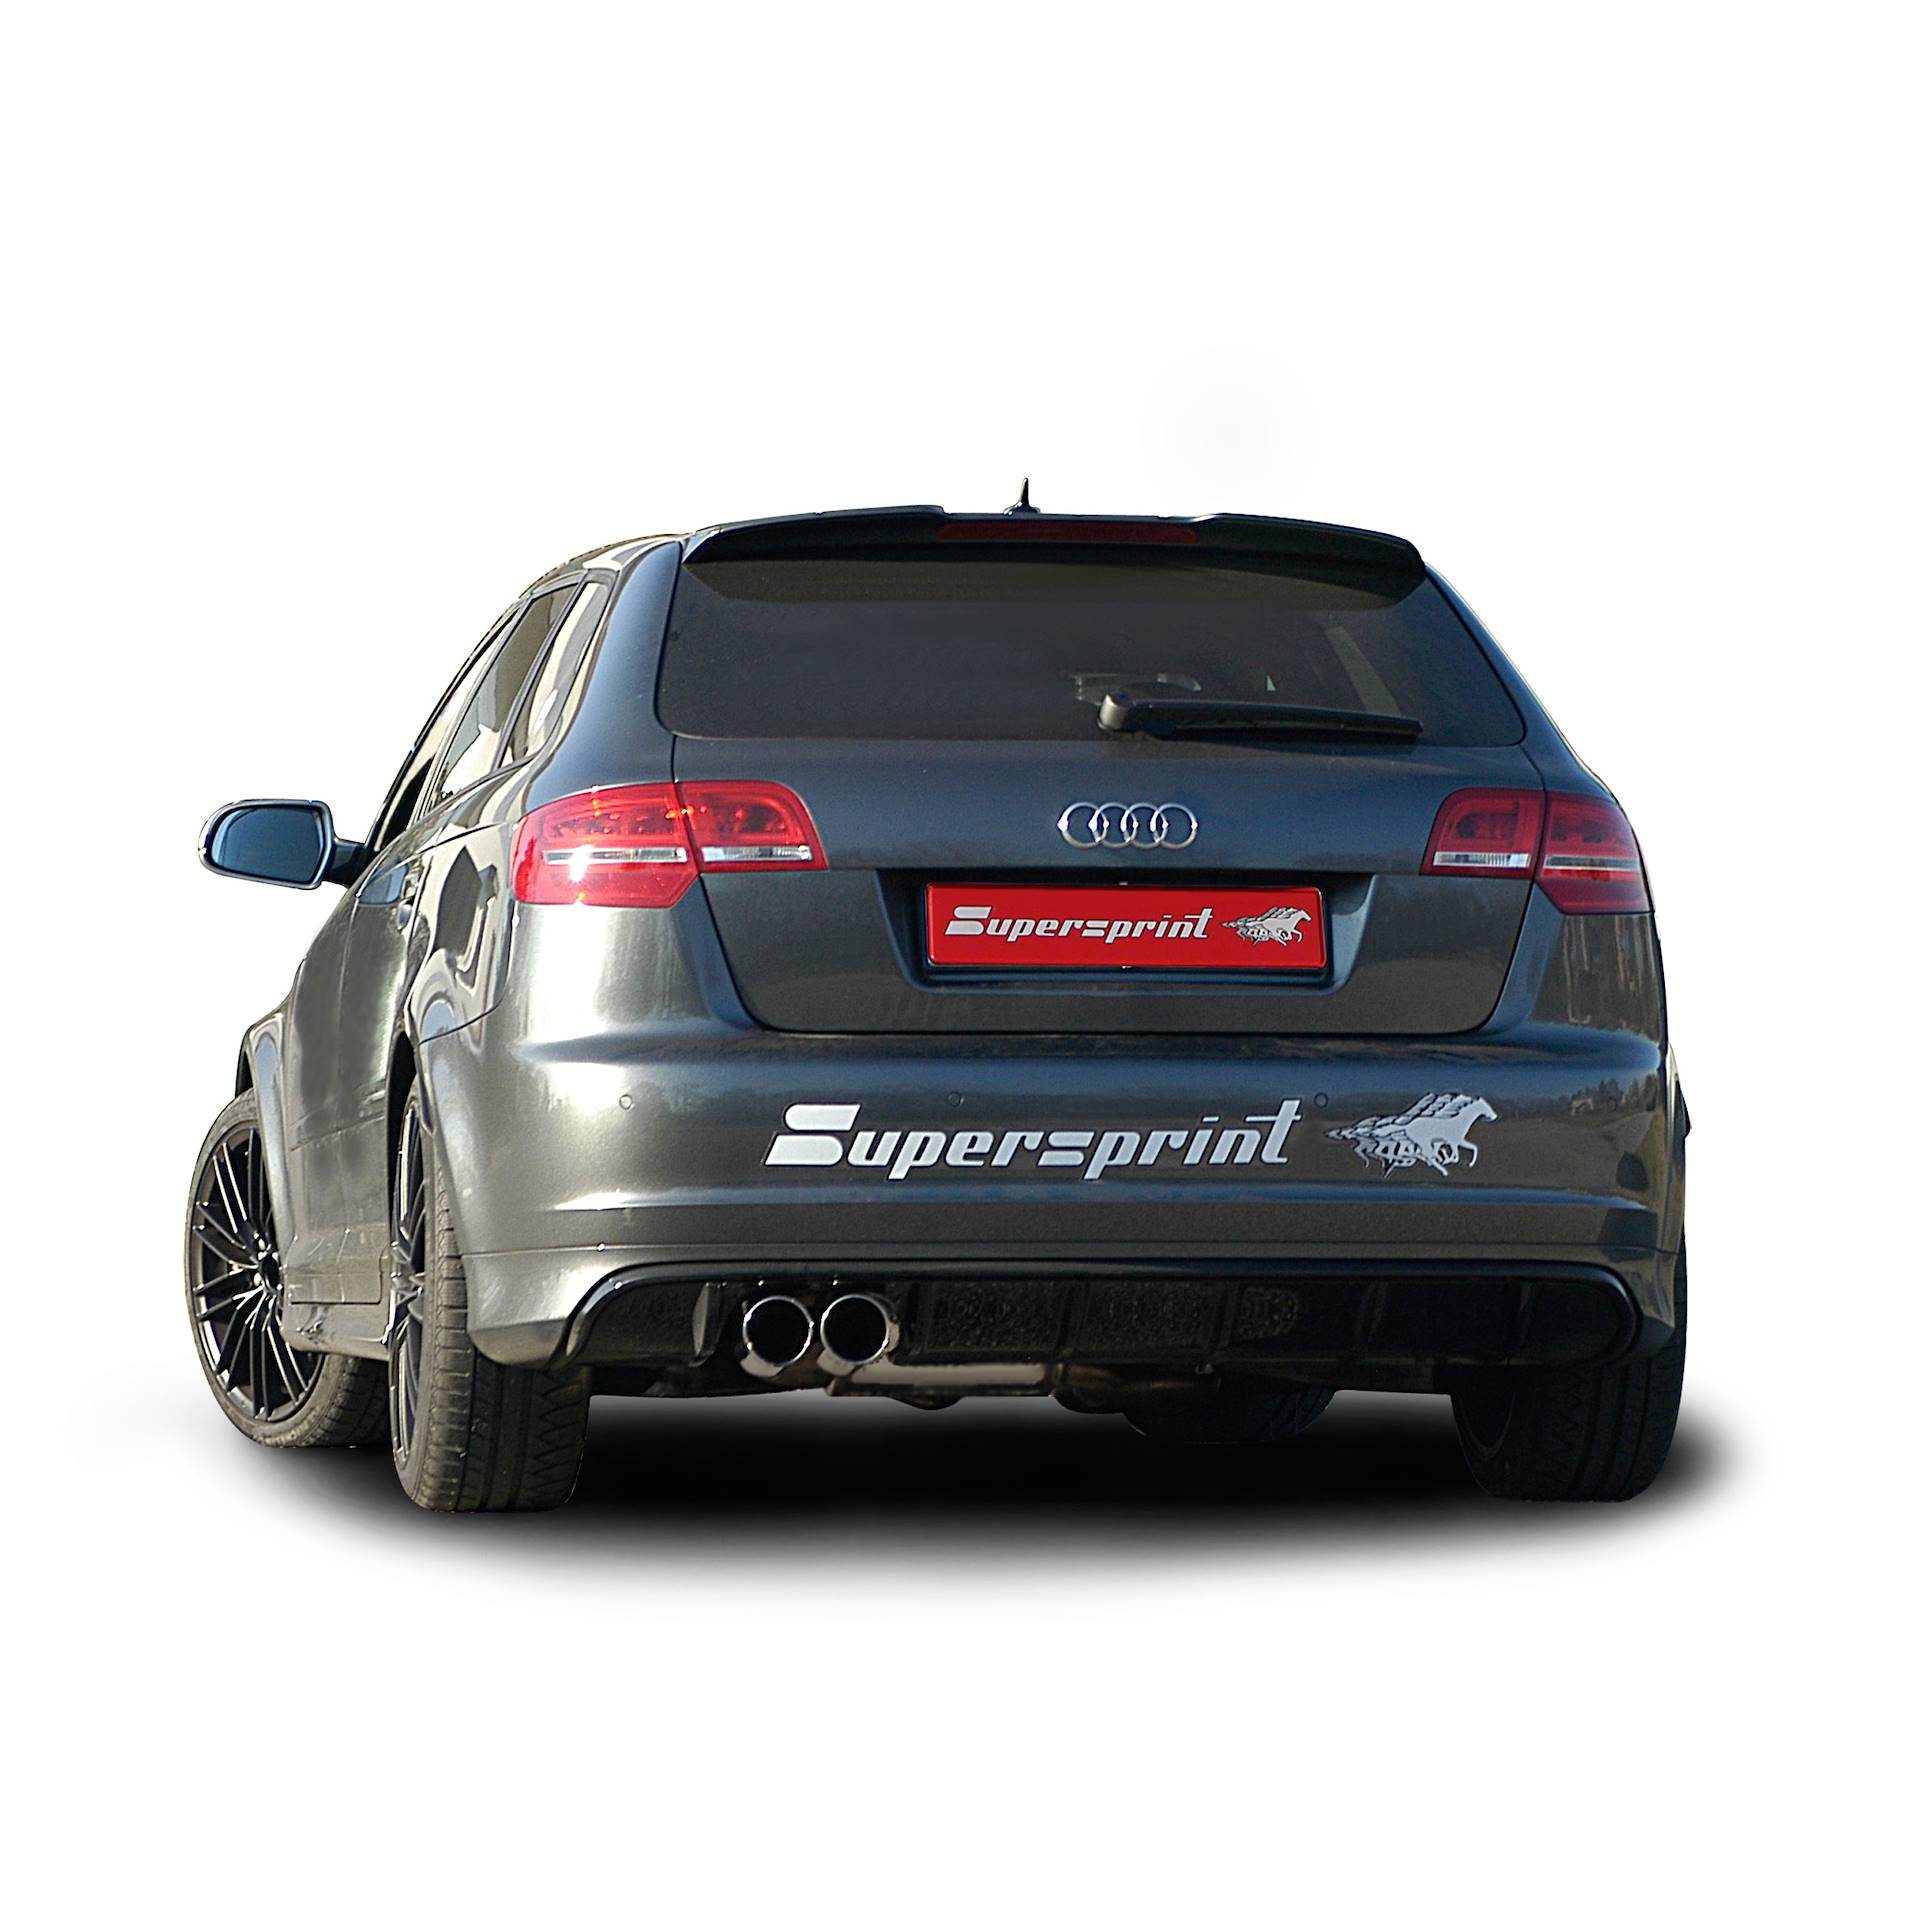 audi a3 rs3 sportback quattro 2 5 tfsi 340 hp 2011 supersprint full exhaust official videos. Black Bedroom Furniture Sets. Home Design Ideas